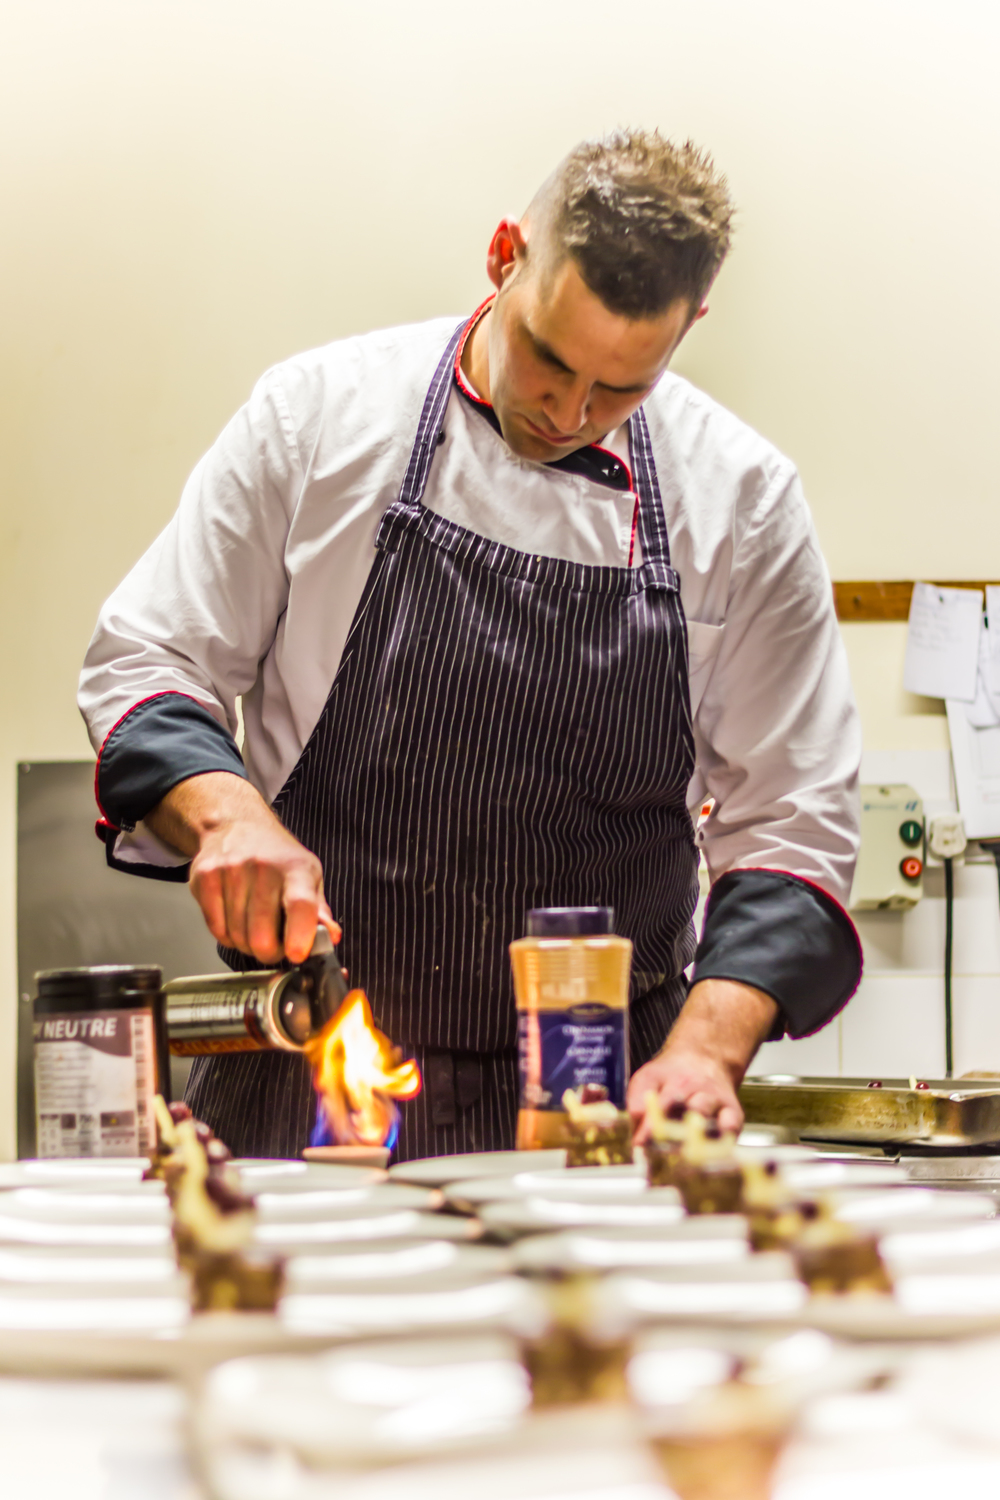 Head chef at Seasons Restaurant, Tobias   Streinetberger